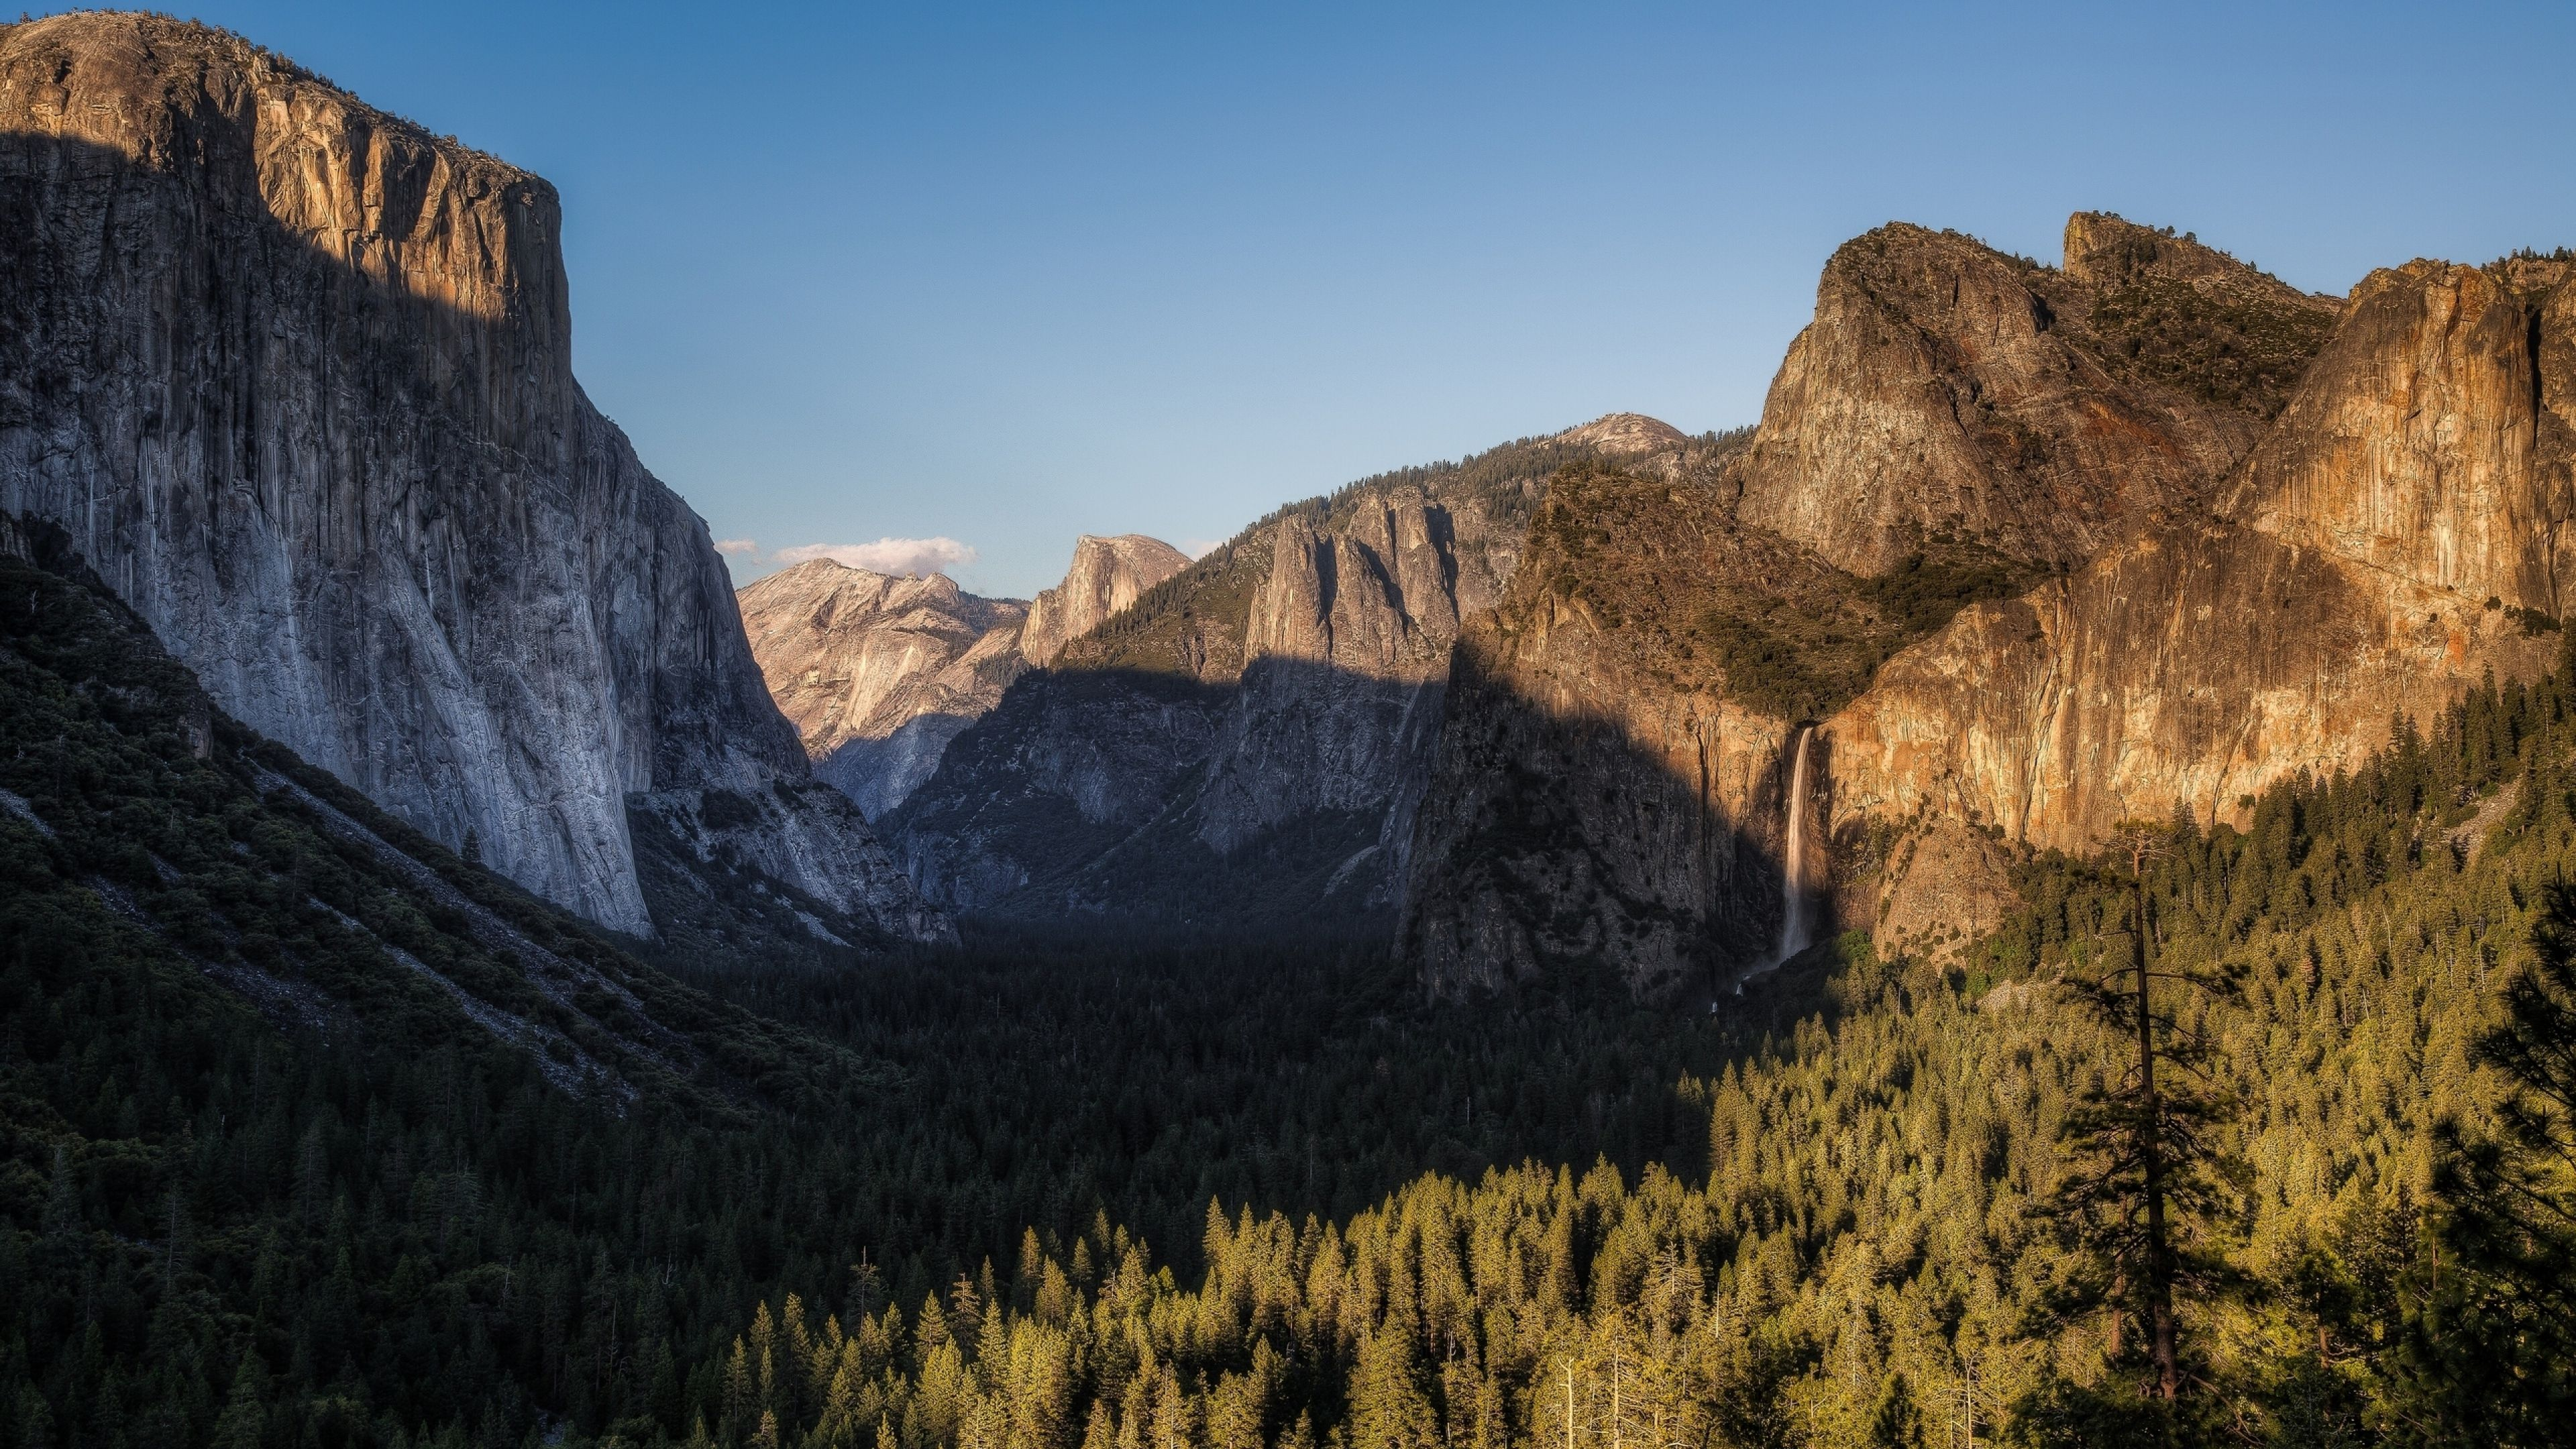 4K Ultra HD Yosemite national park Wallpapers HD, Desktop